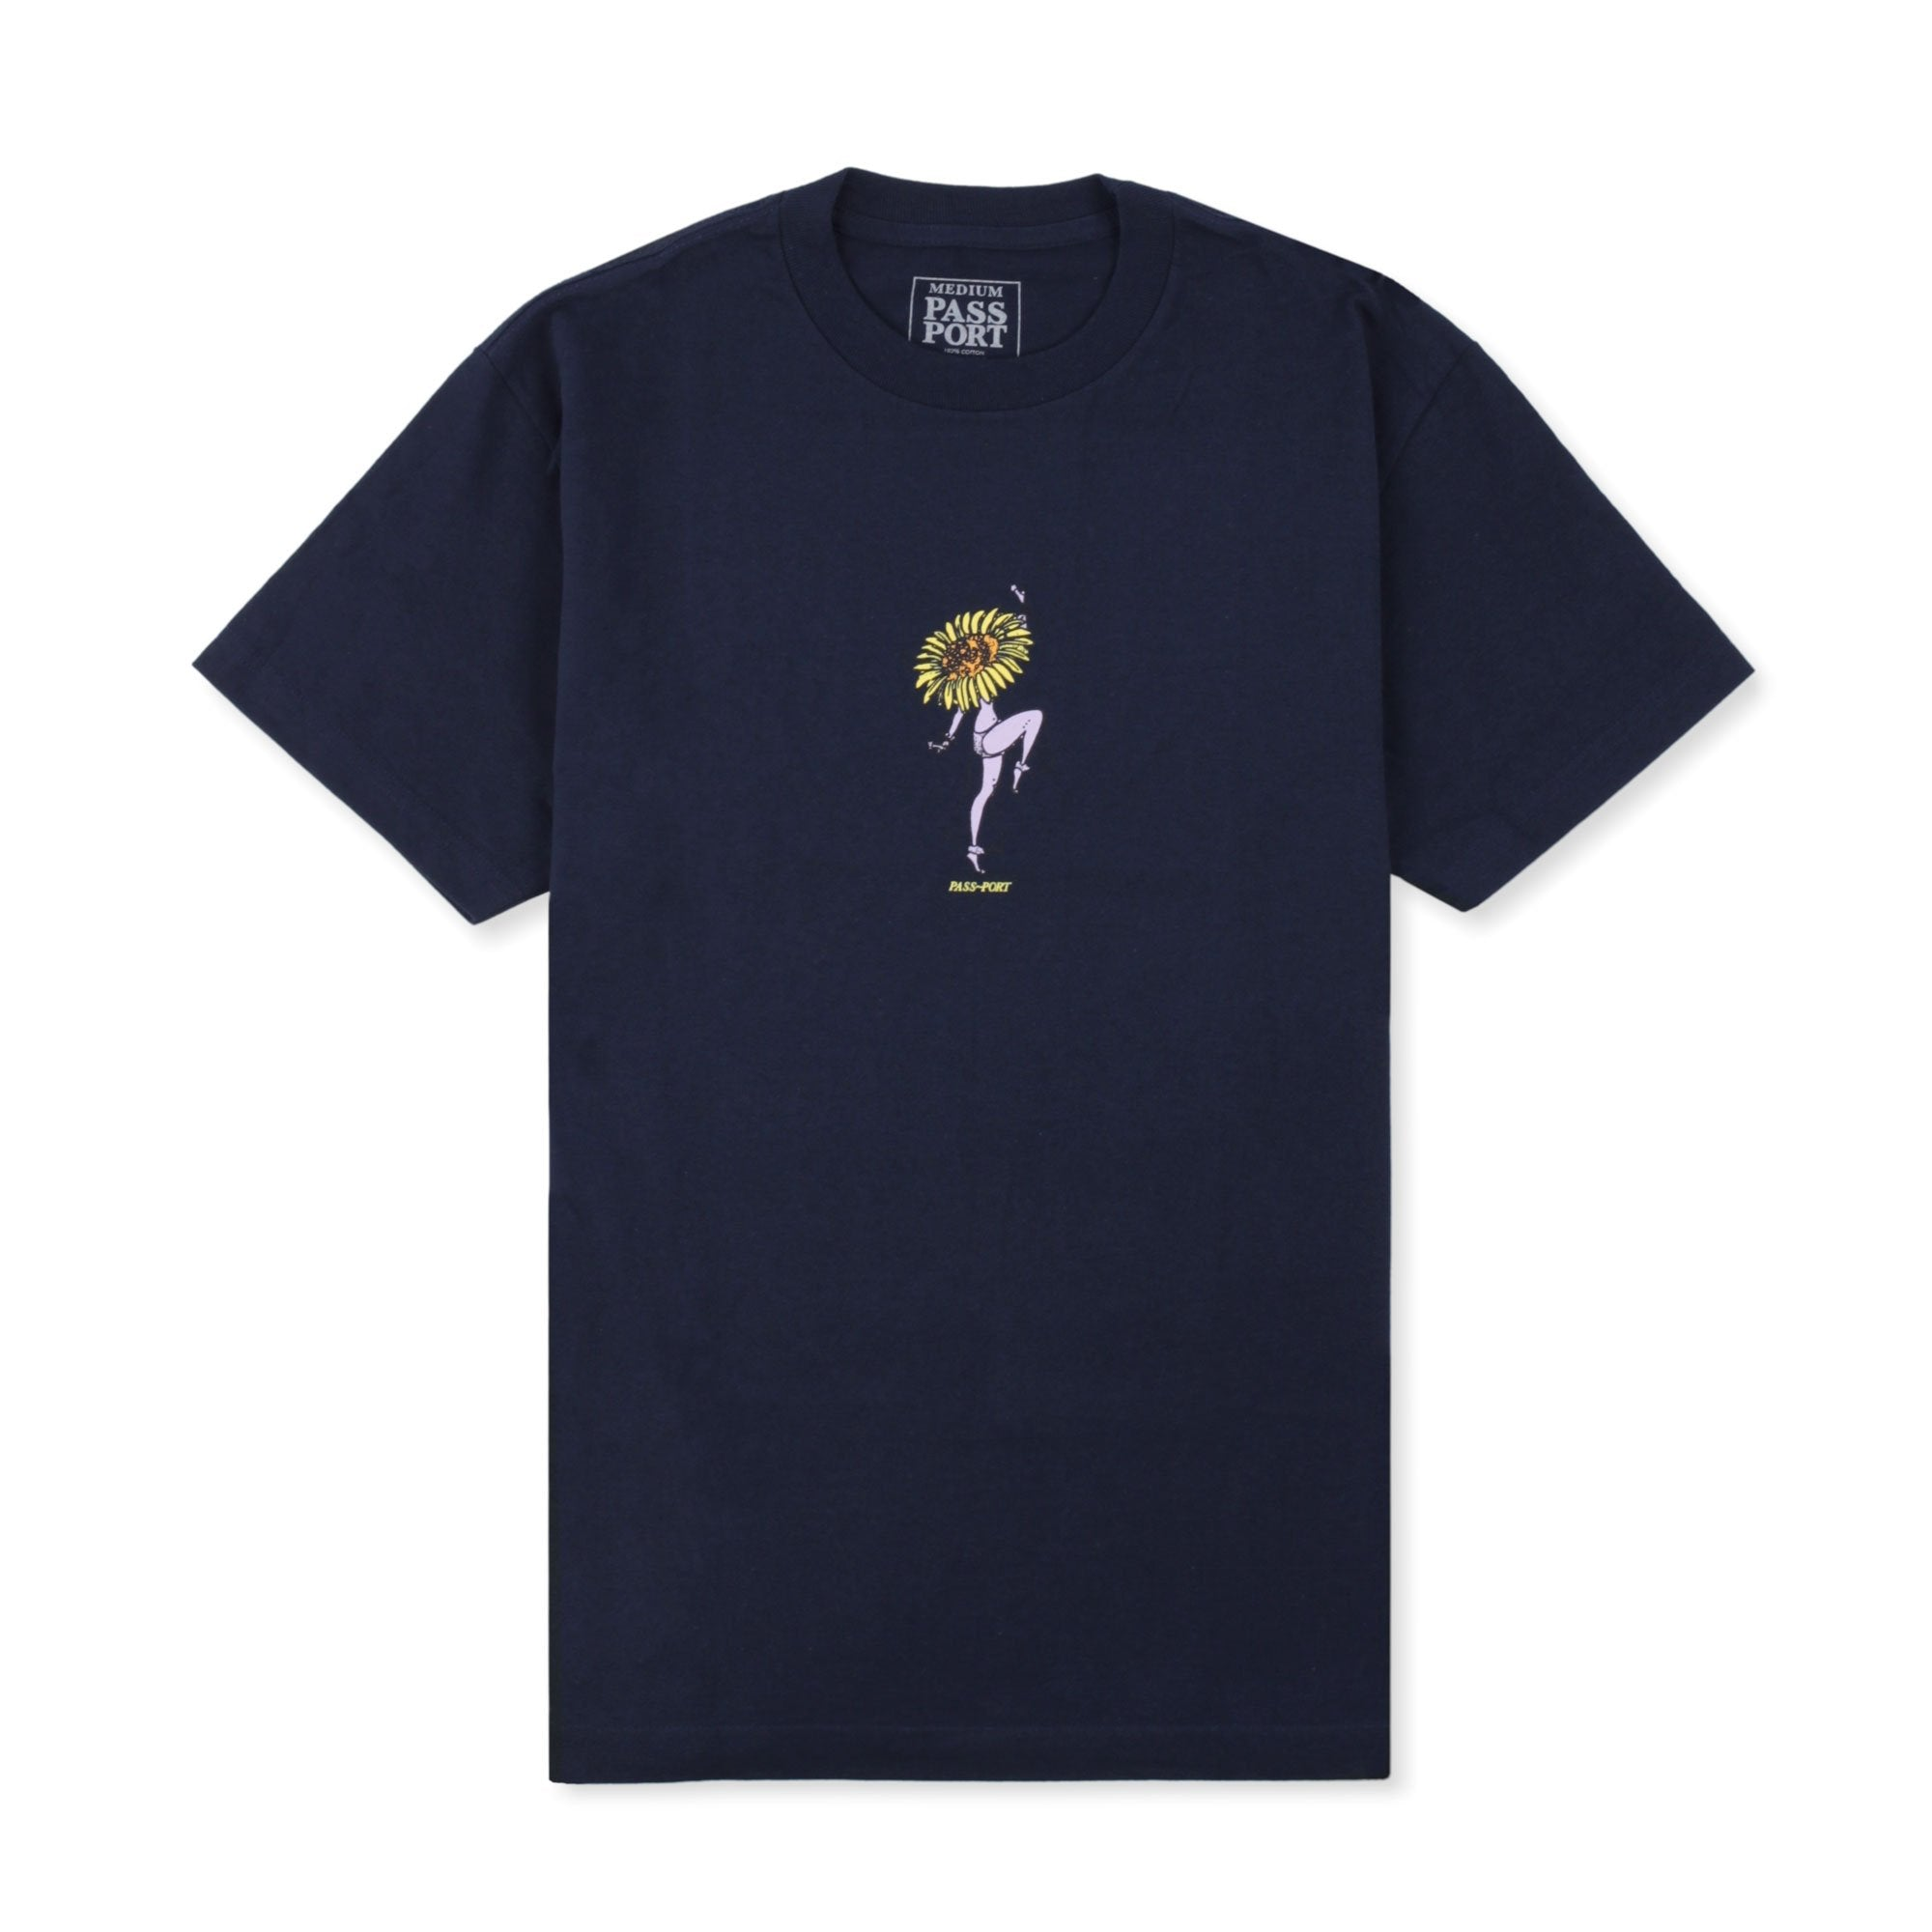 Passport Floral Dancer Tee Product Photo #1